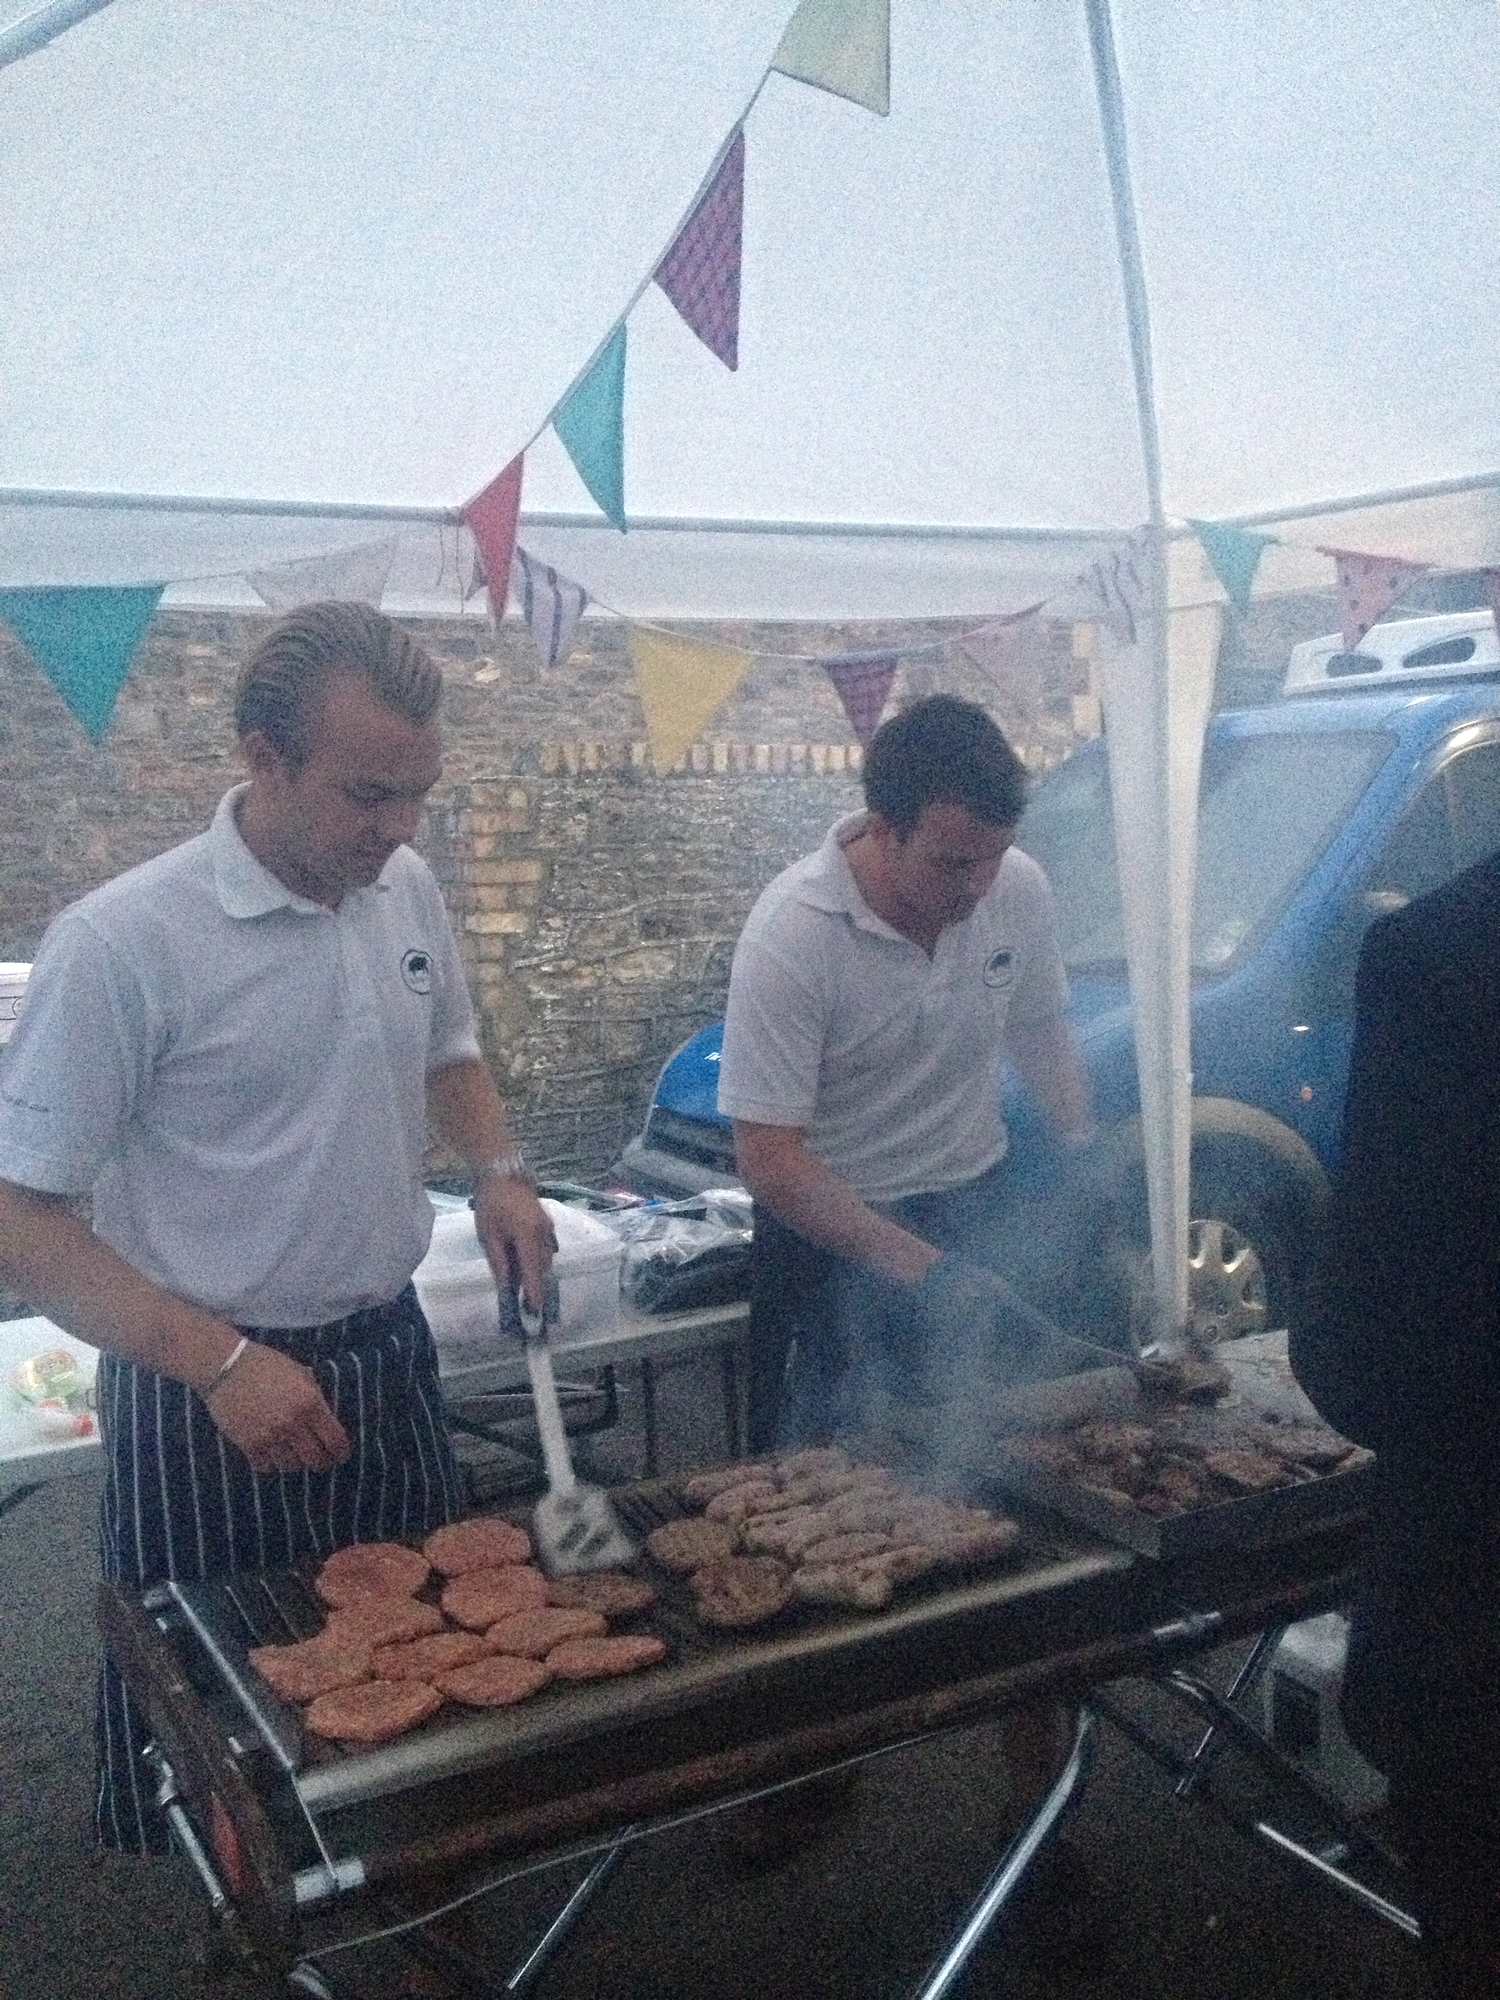 The Cinders Caterer BBQ